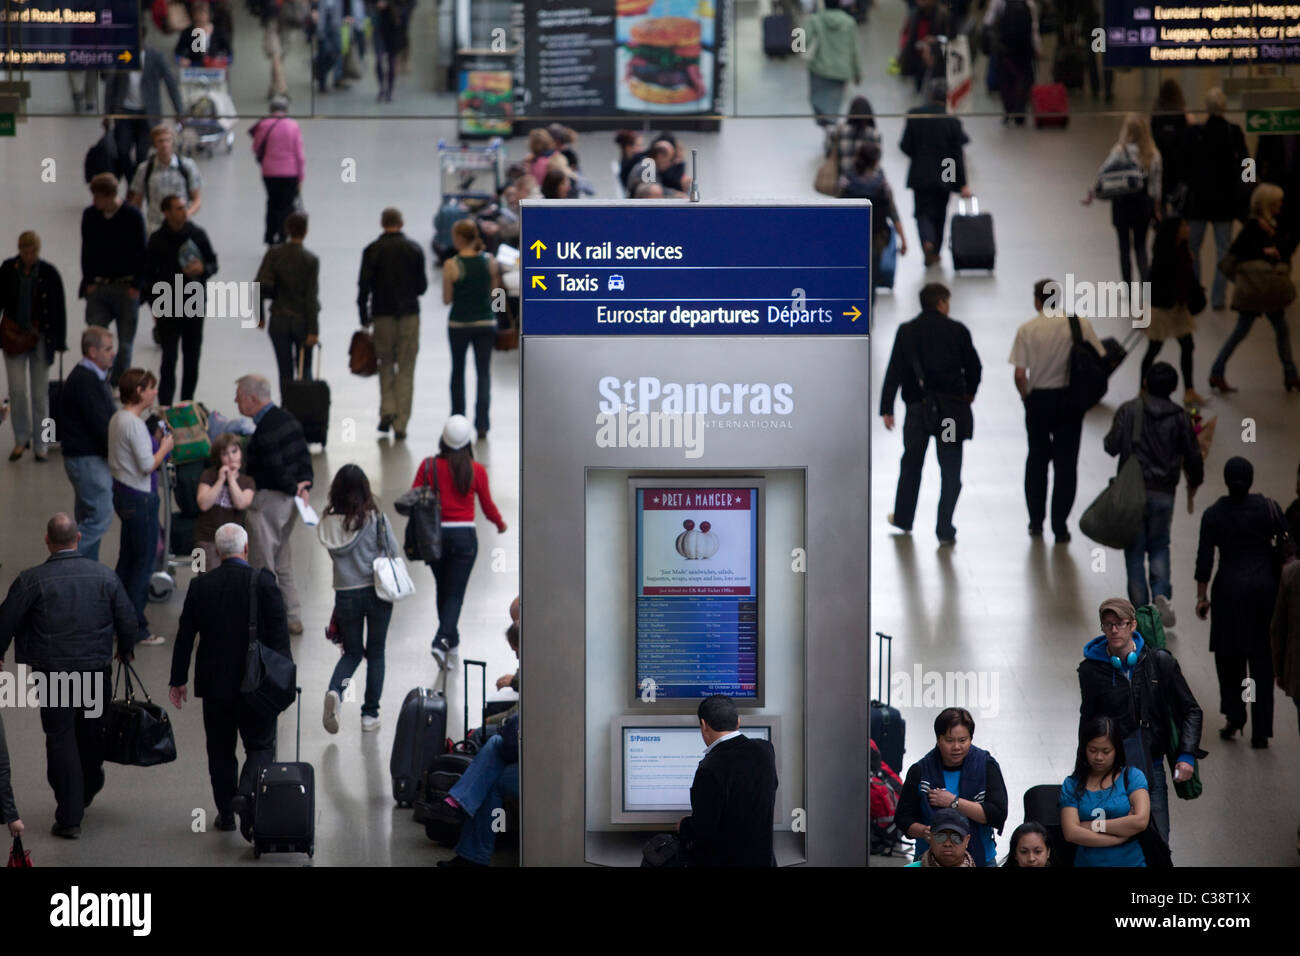 Eurostar services at King's Cross St Pancras International station - Stock Image